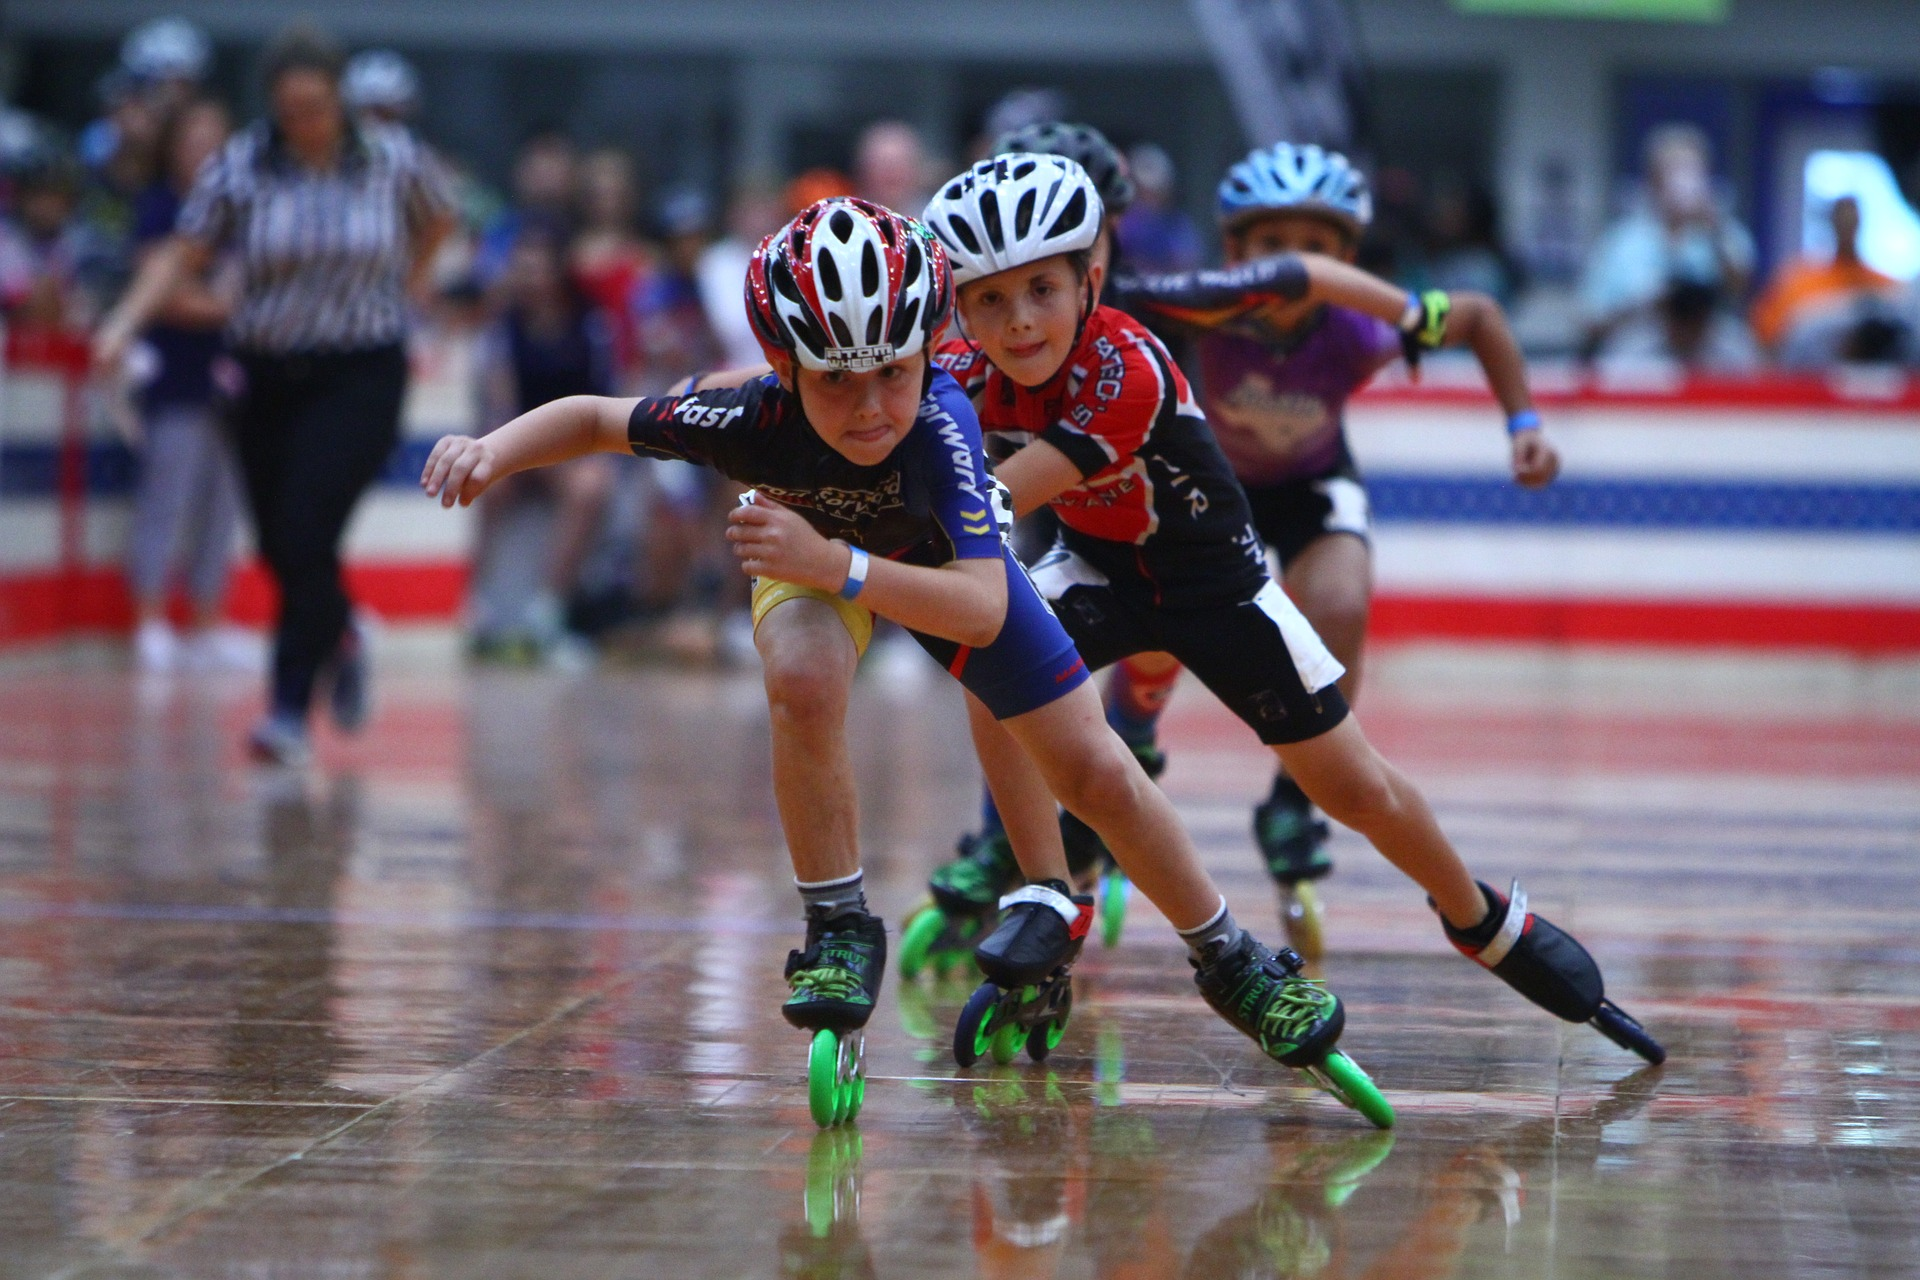 inline-speed-skating-2460833_1920